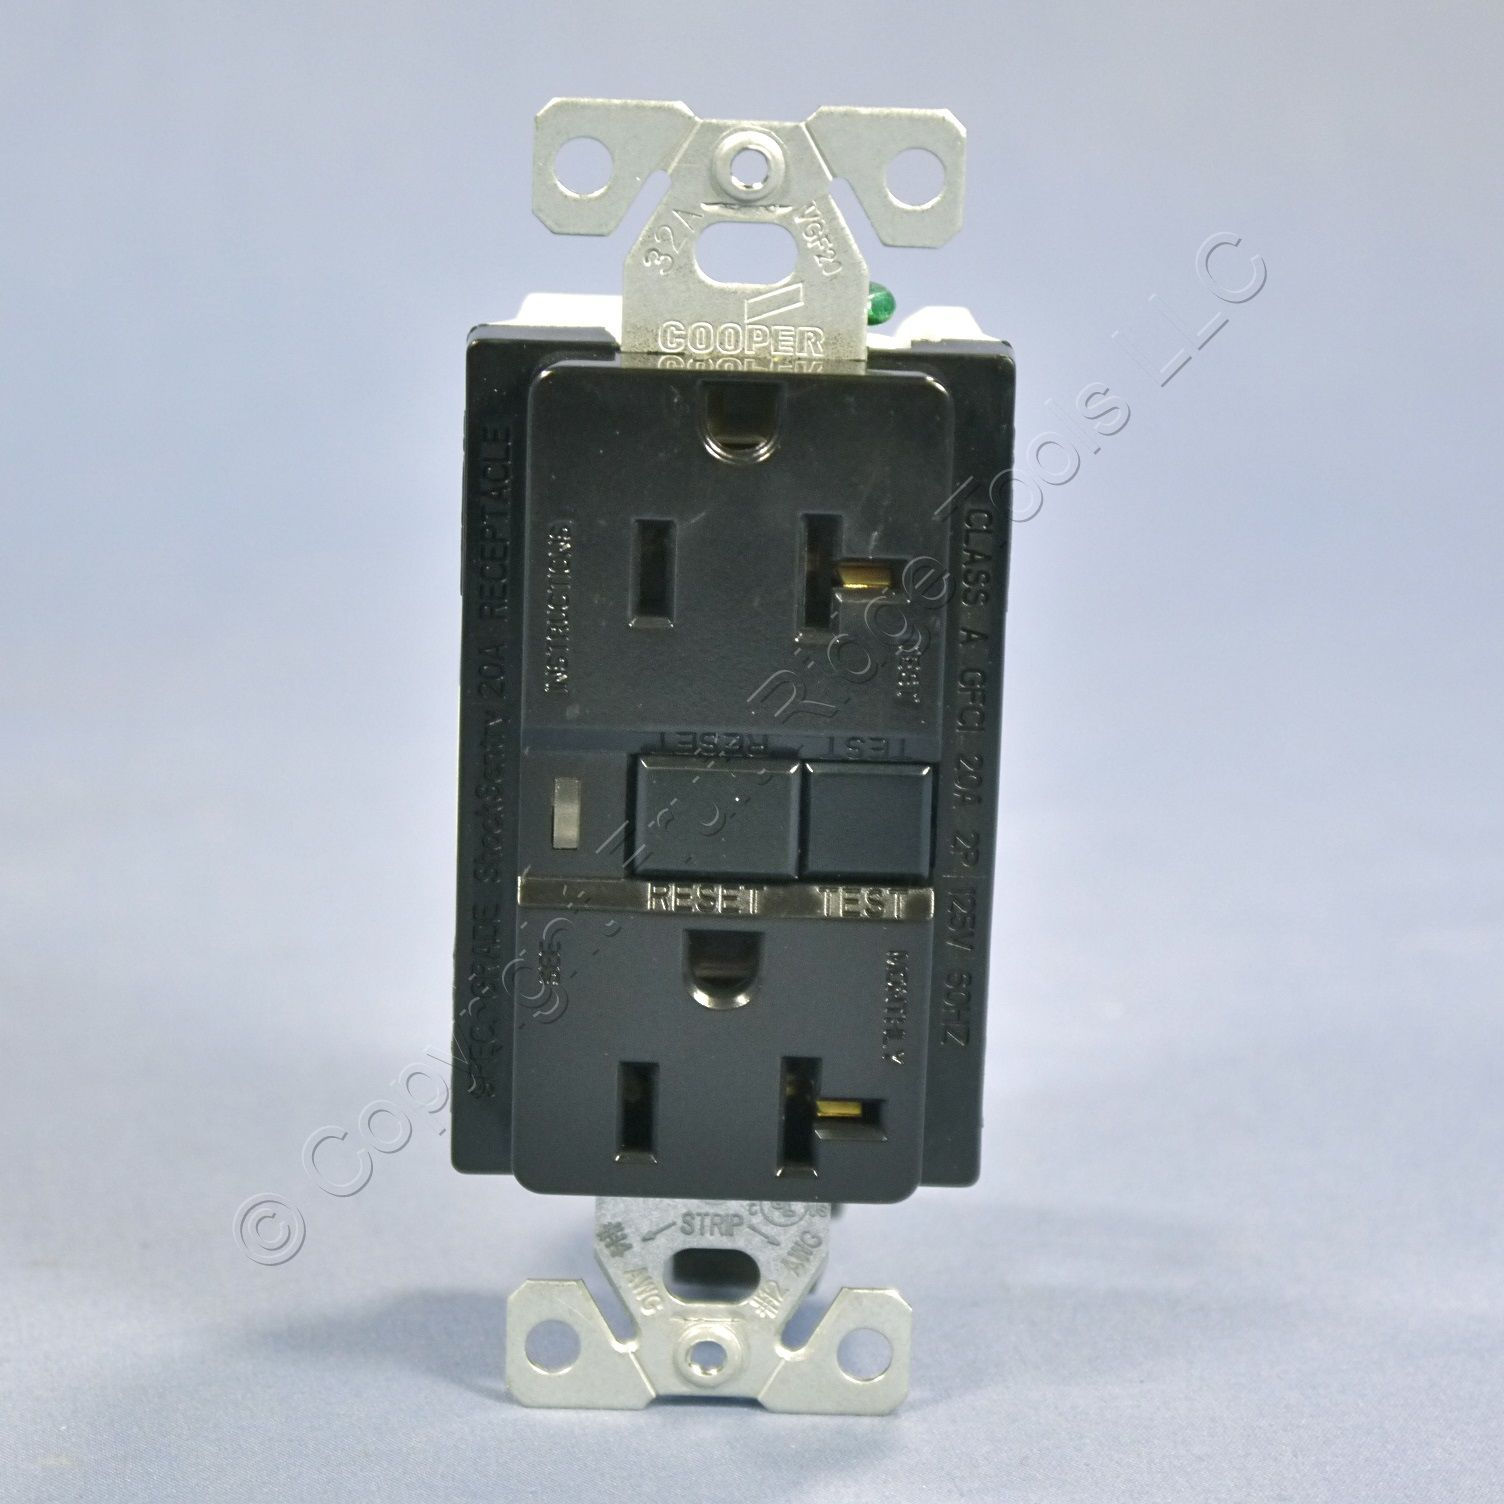 Cooper Wiring Commercial Specification Grade Black Duplex Receptacle GFCI Outlet 20A 125V EATON-20BK at Sears.com